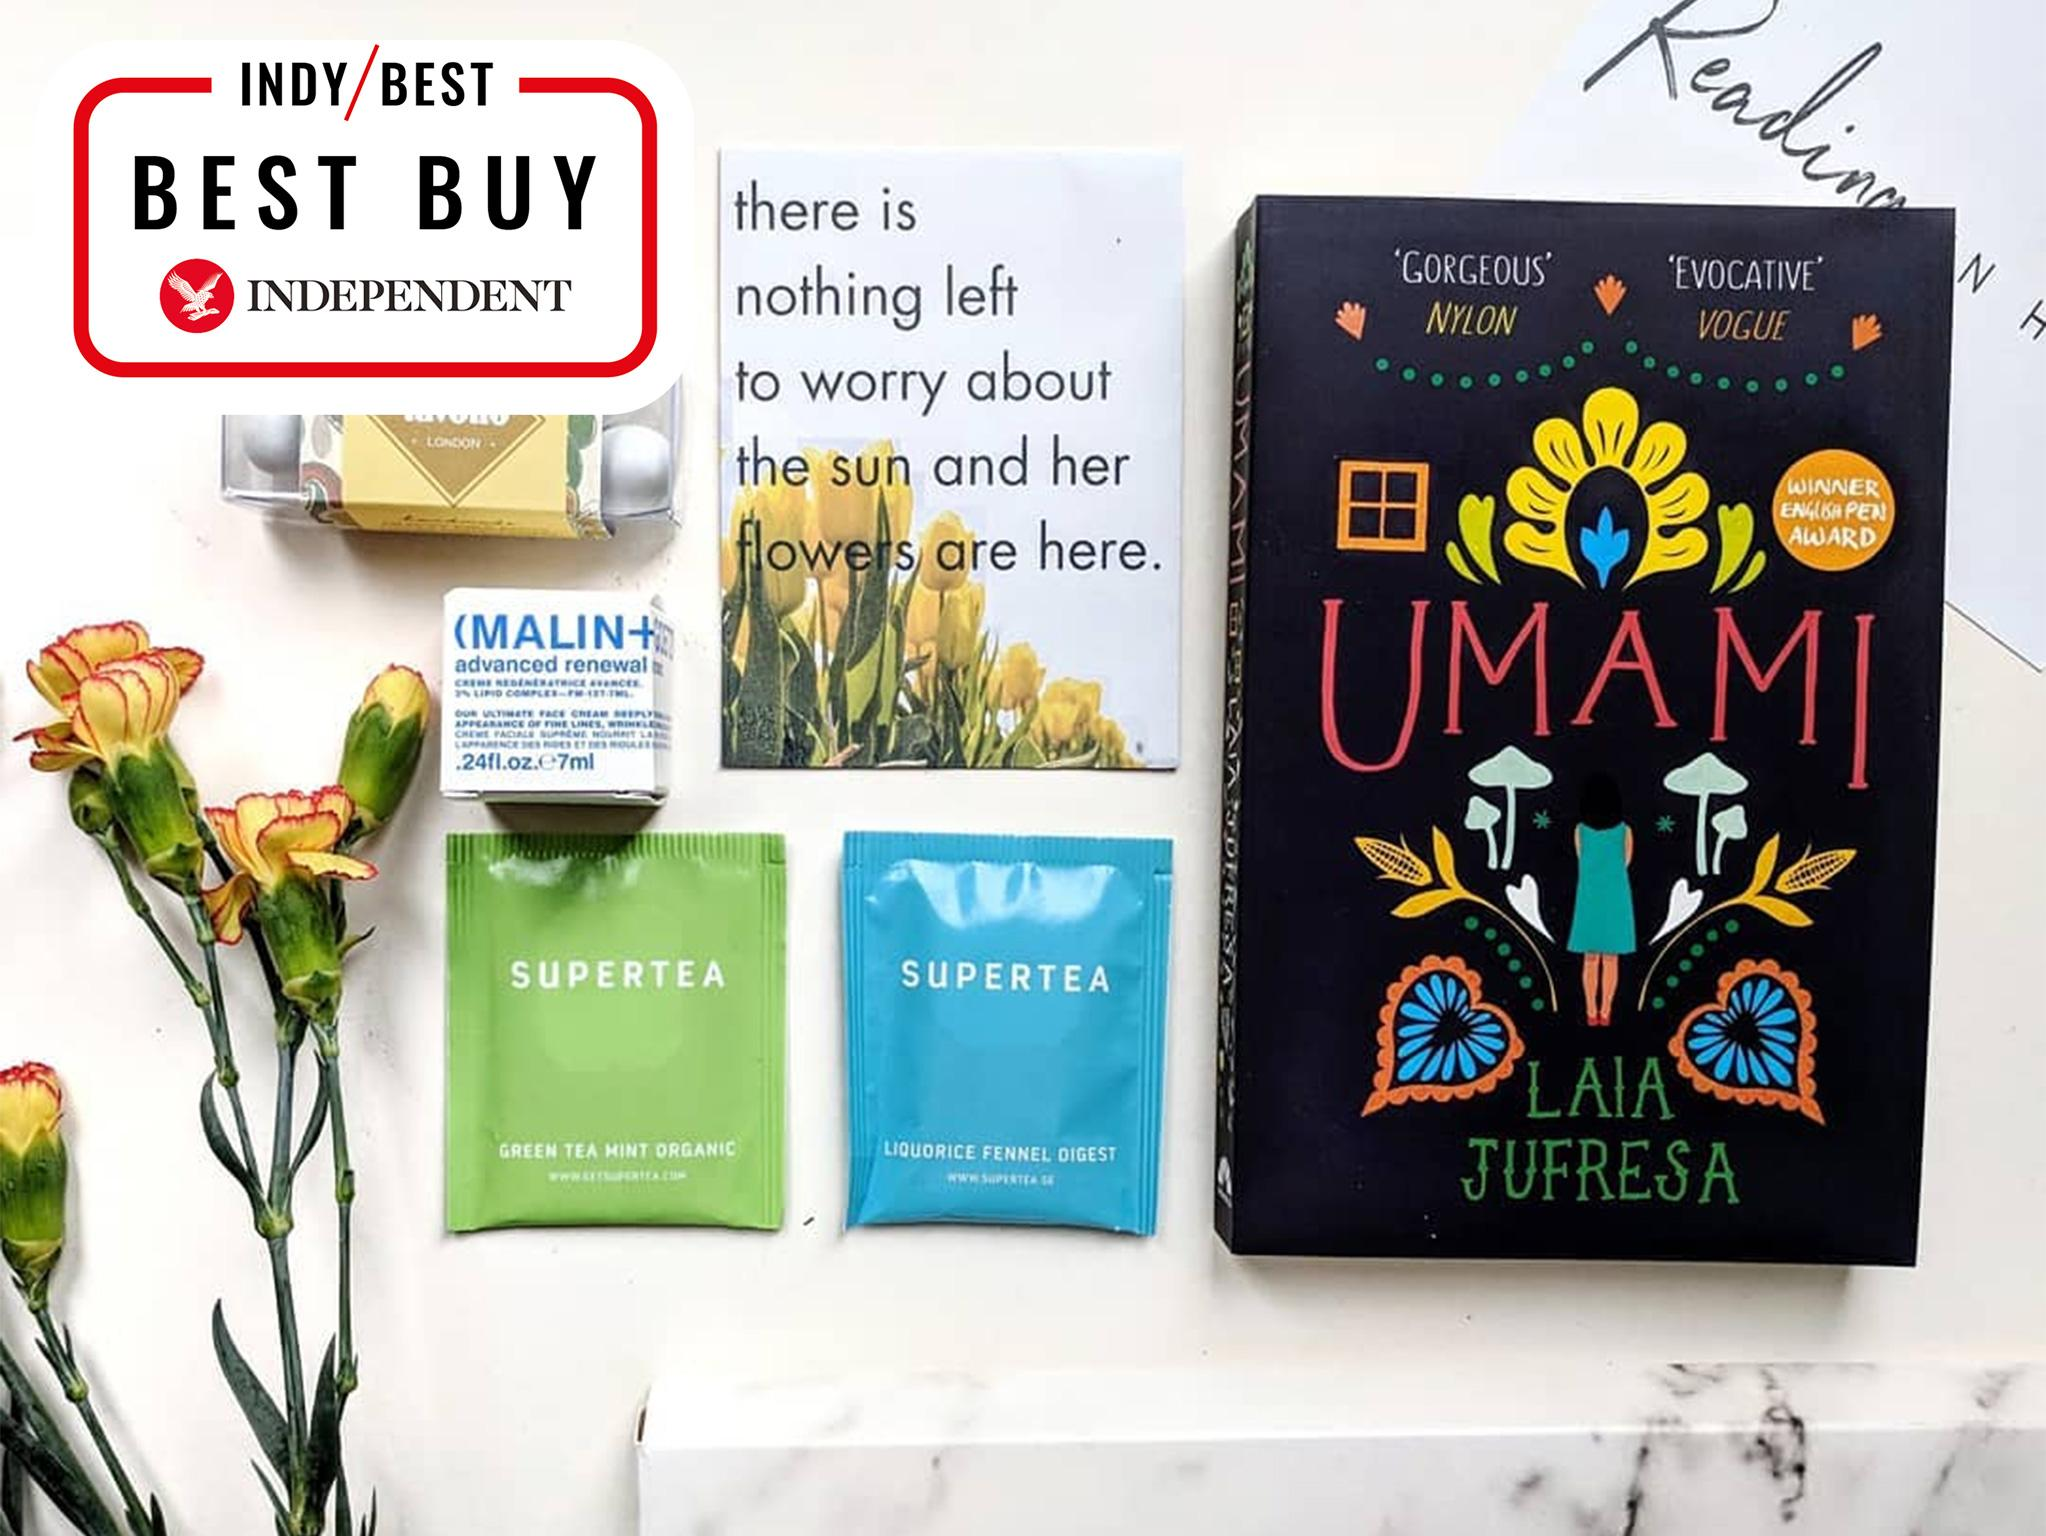 12 best book subscription boxes | The Independent